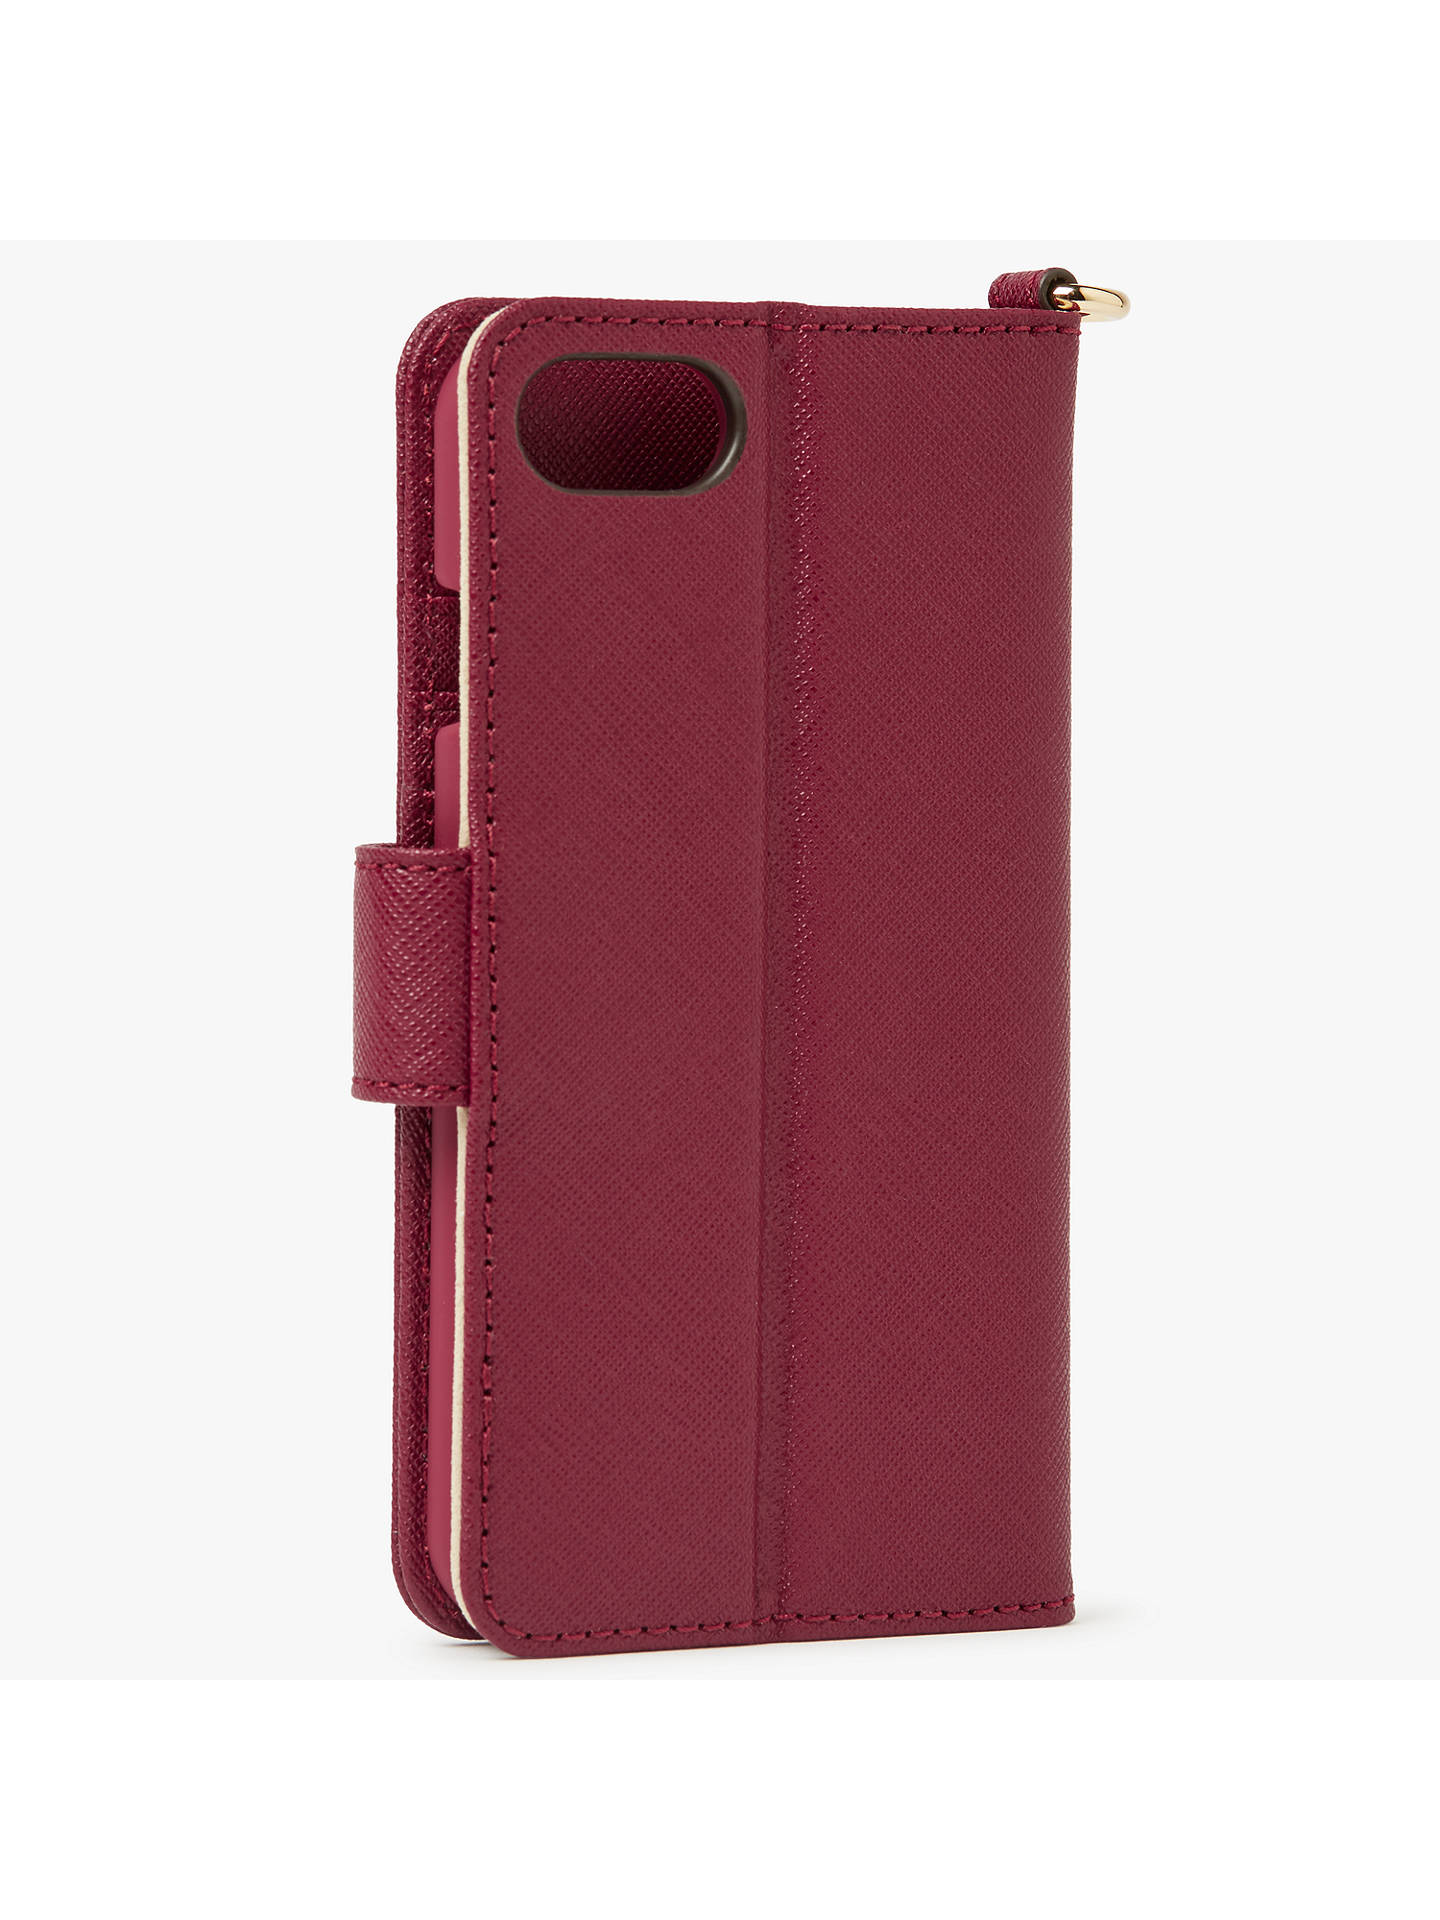 01626a7b0645 ... Buy MICHAEL Michael Kors Electronic Folio iPhone 6 Case, Mulberry  Online at johnlewis.com